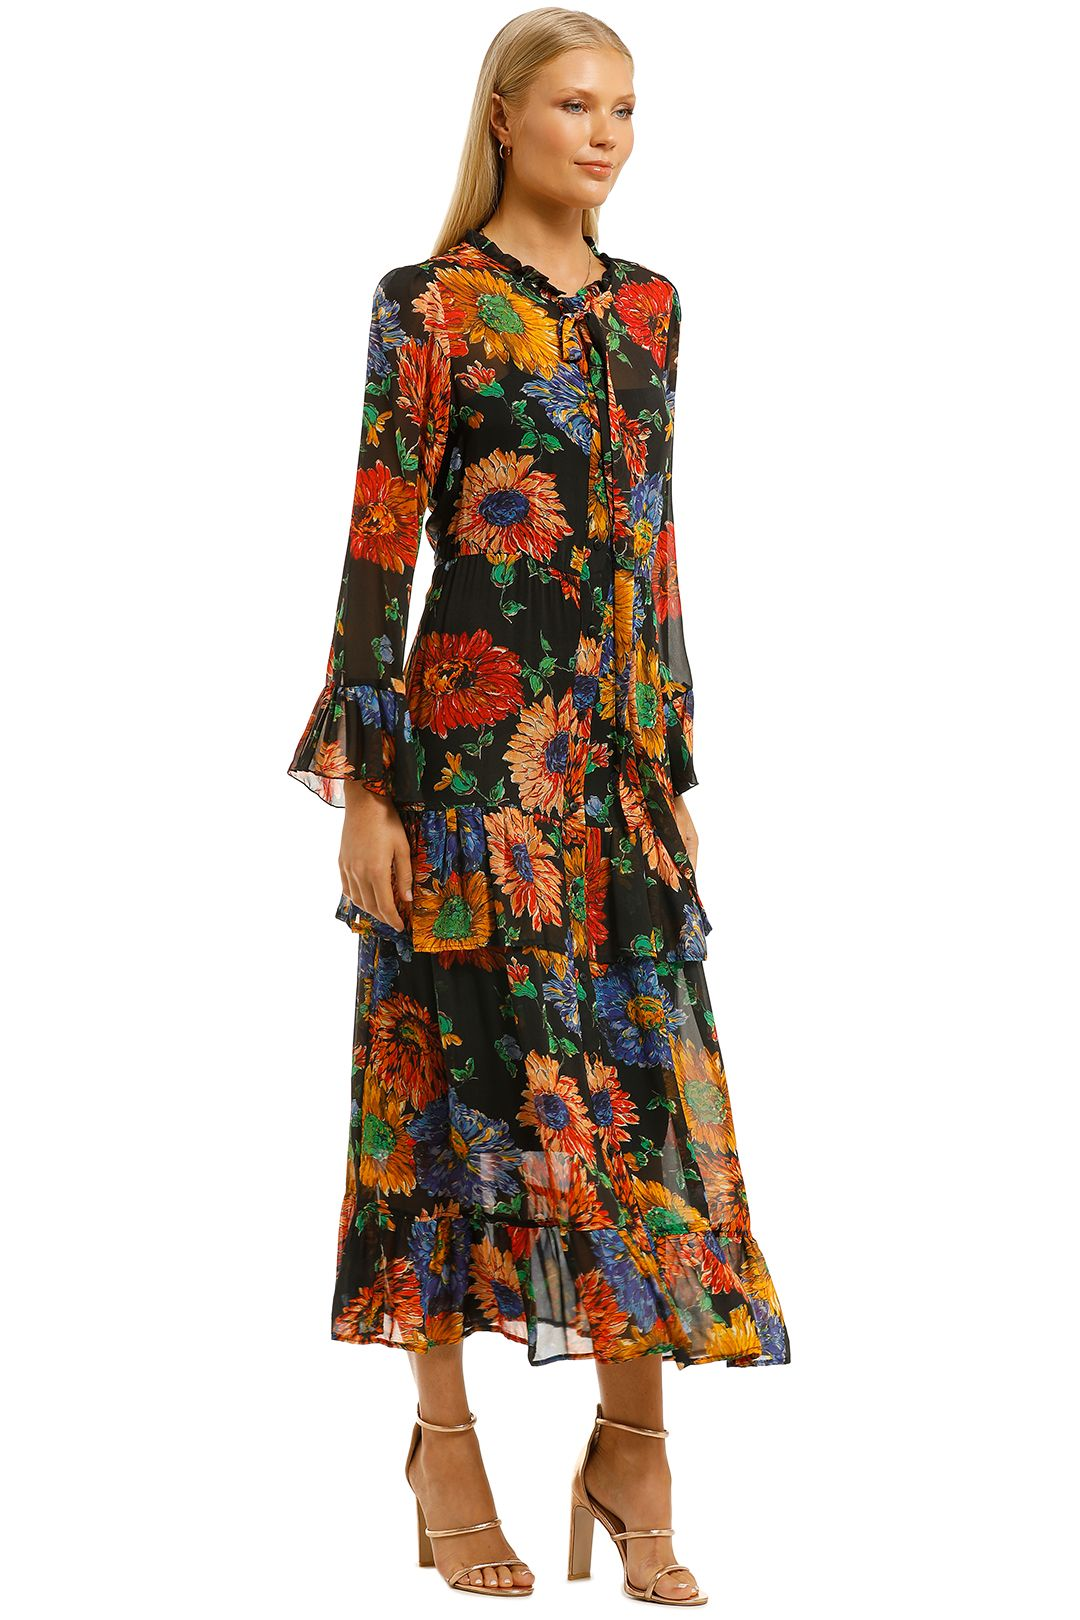 Curate-by-Trelise-Cooper-Long-With-The-Wind-Dress-Flower-Side